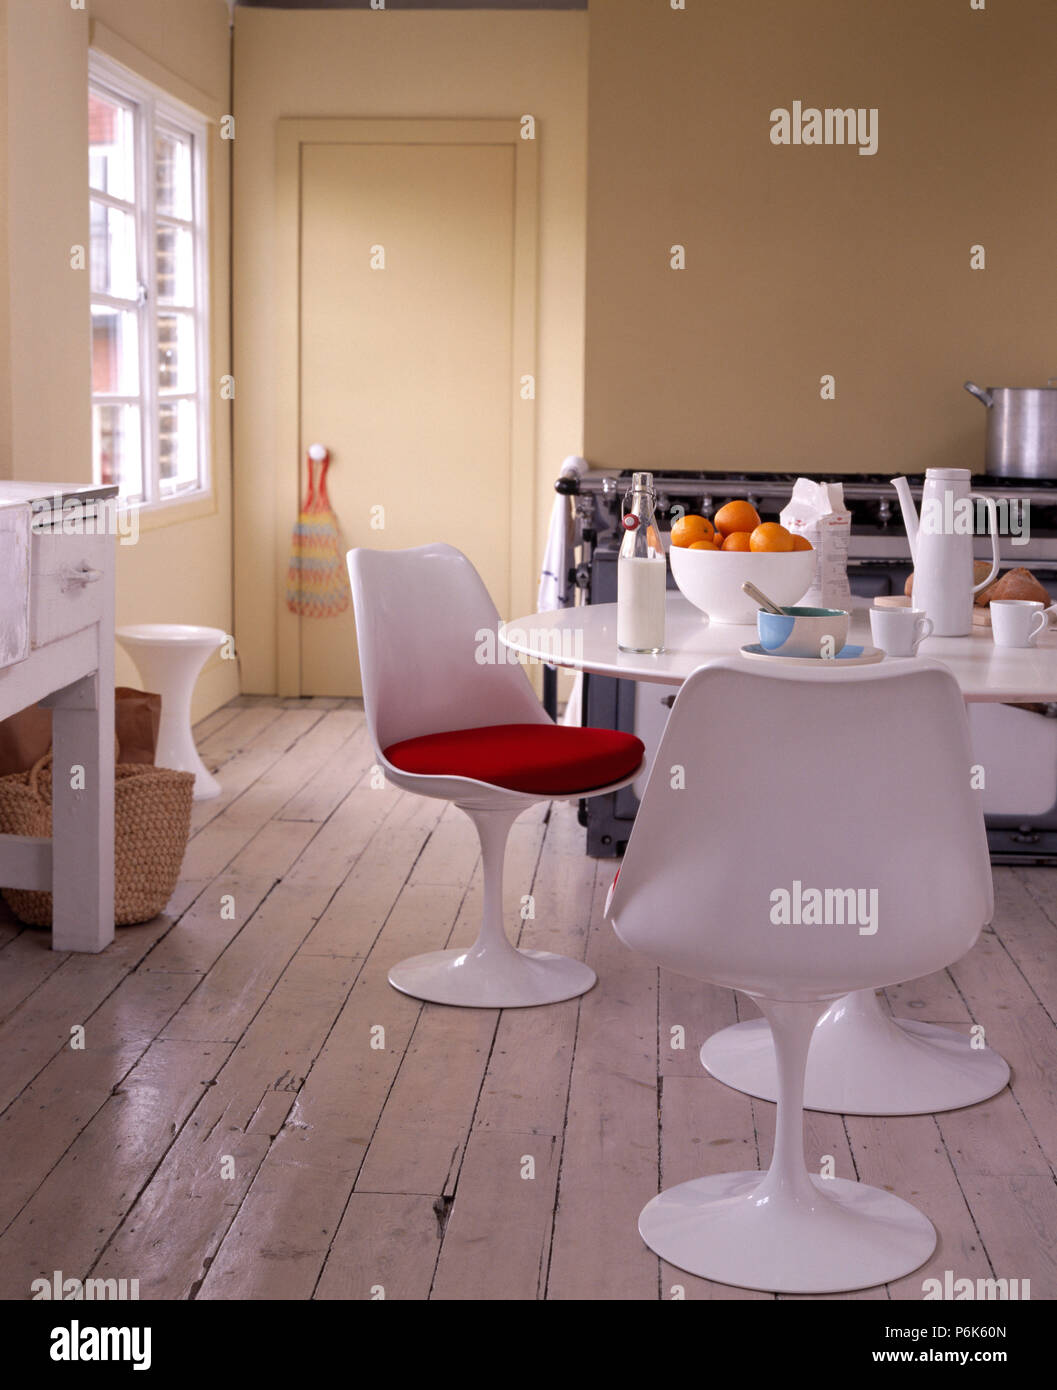 Pleasant Eero Saarinen Style White Chairs And Table In An Urban Andrewgaddart Wooden Chair Designs For Living Room Andrewgaddartcom